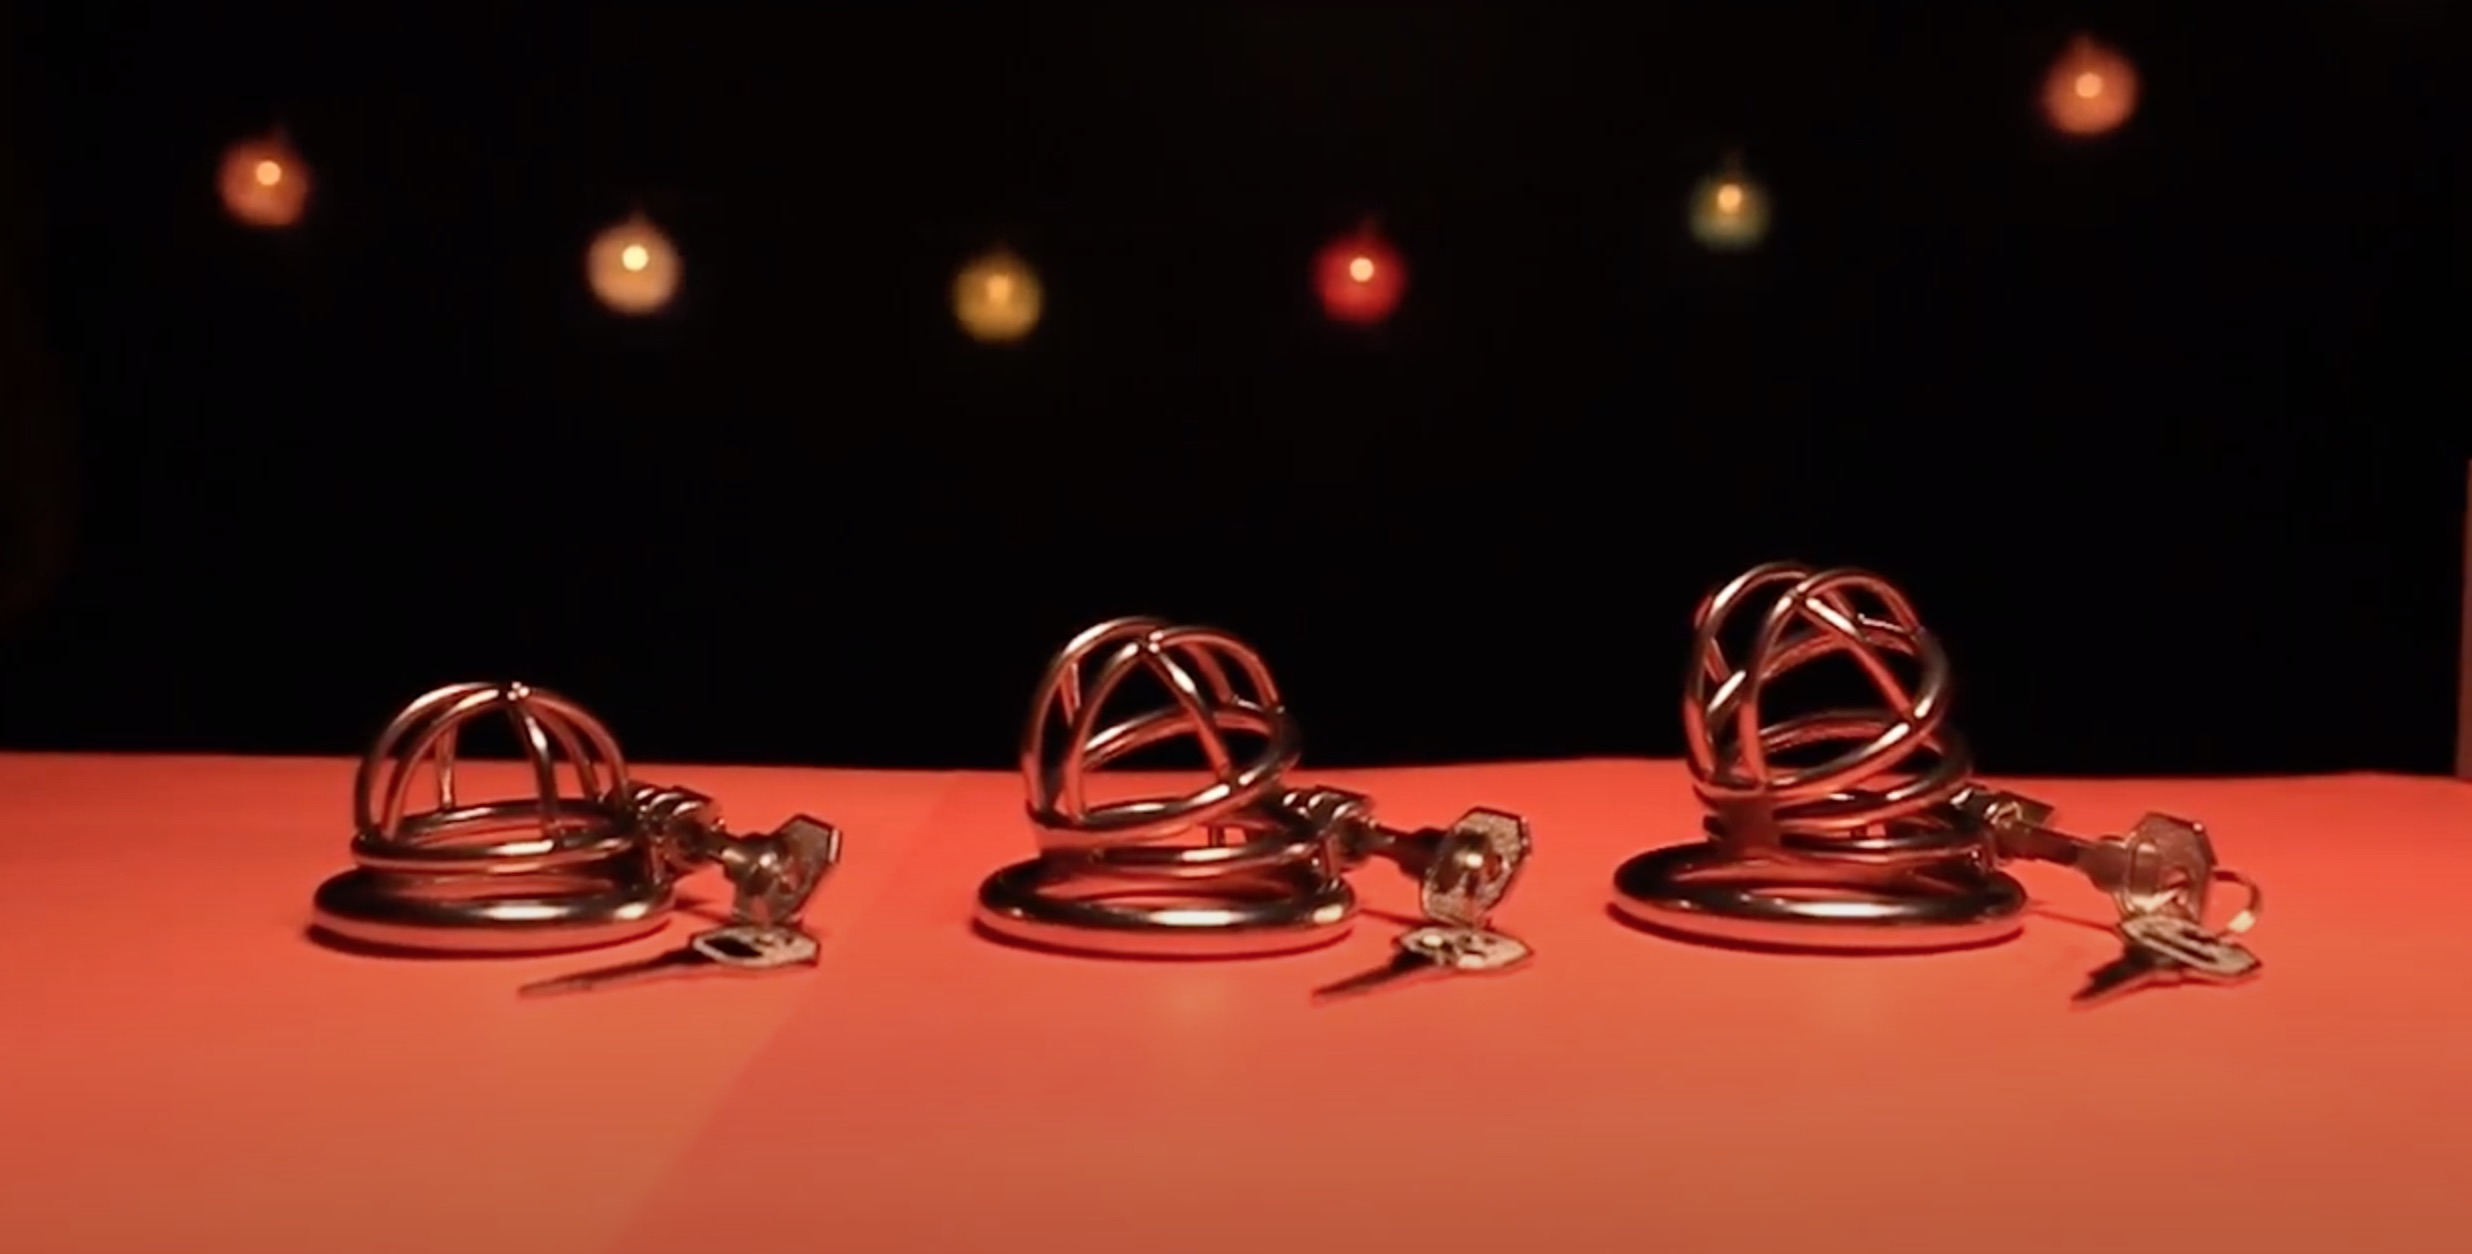 Sizing male chastity cages